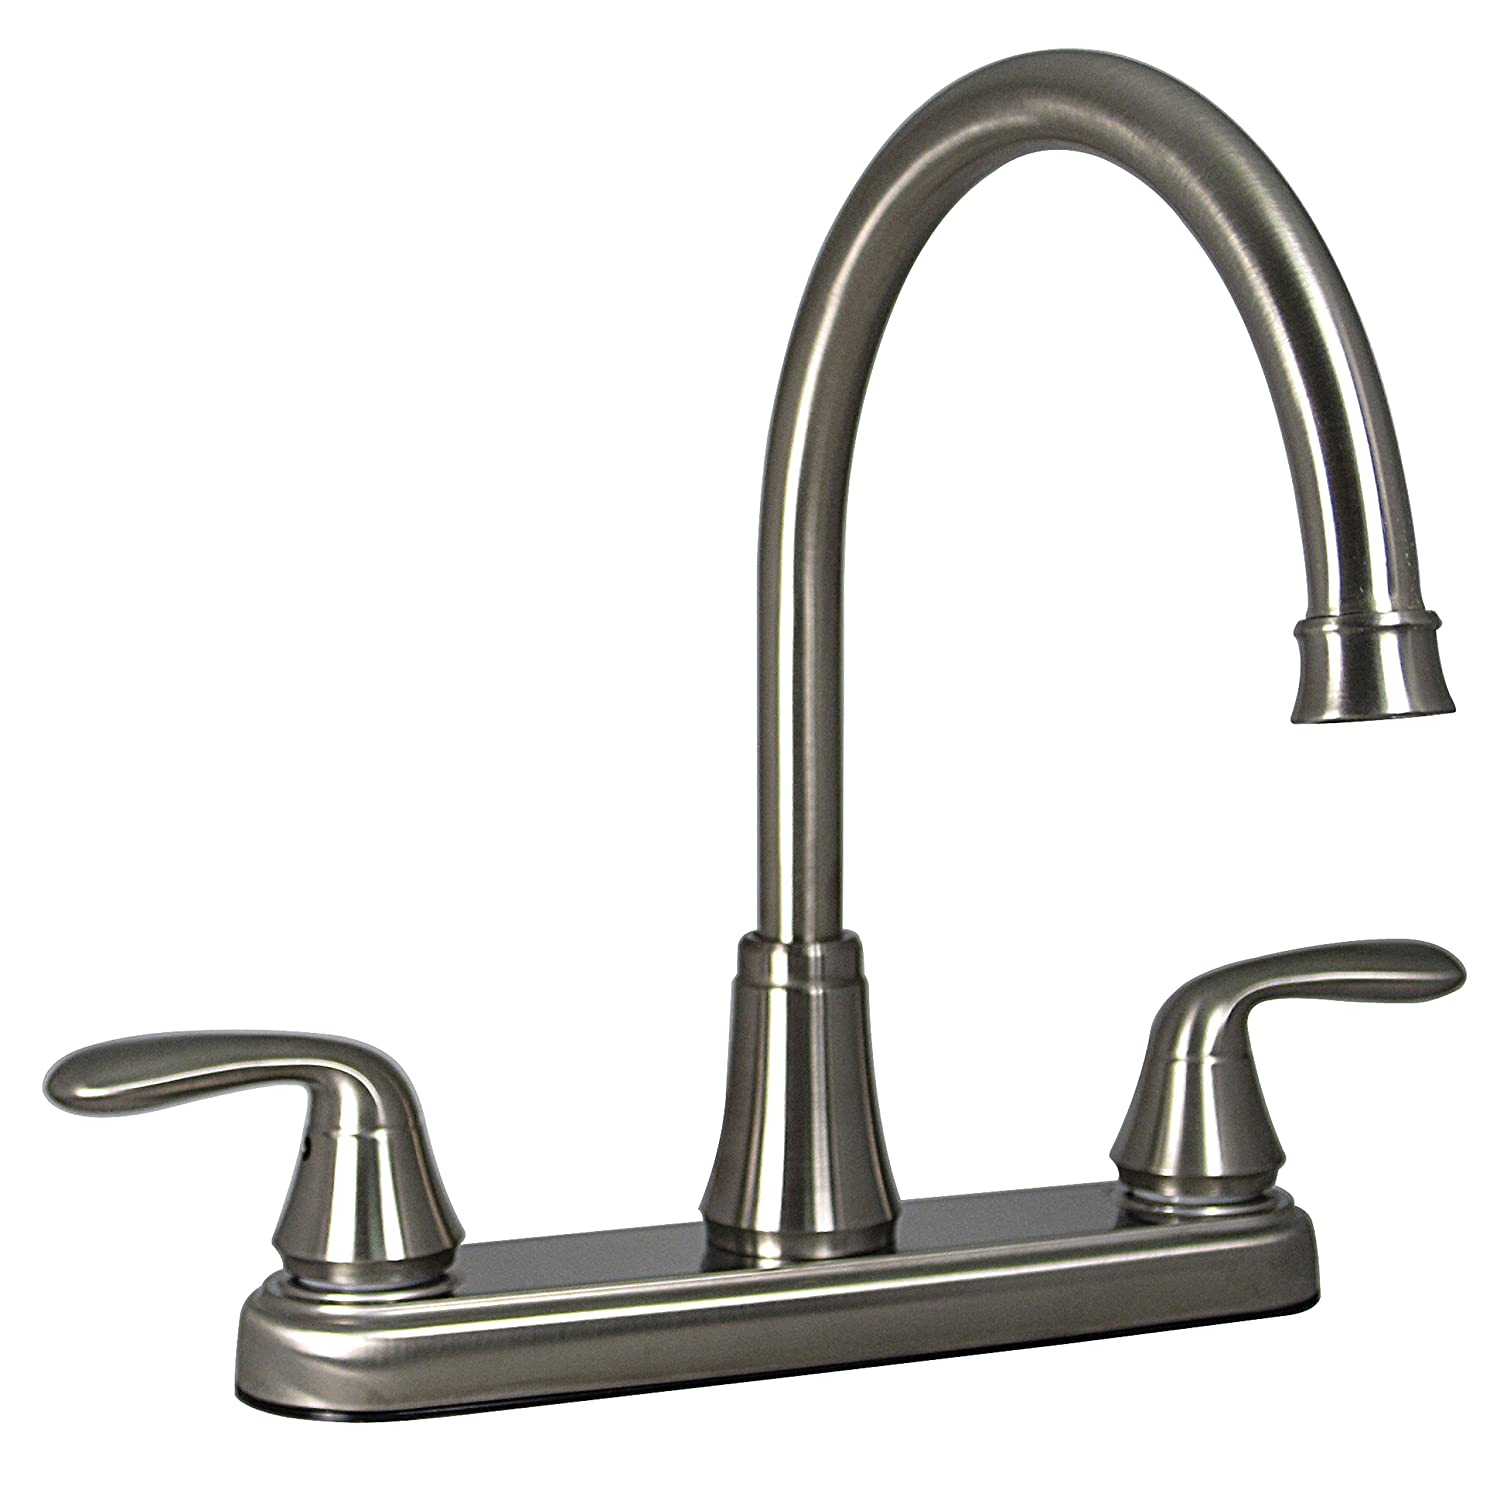 Phoenix PF231402 Two-Handle Kitchen High-Arc Faucet, Brushed Nickel